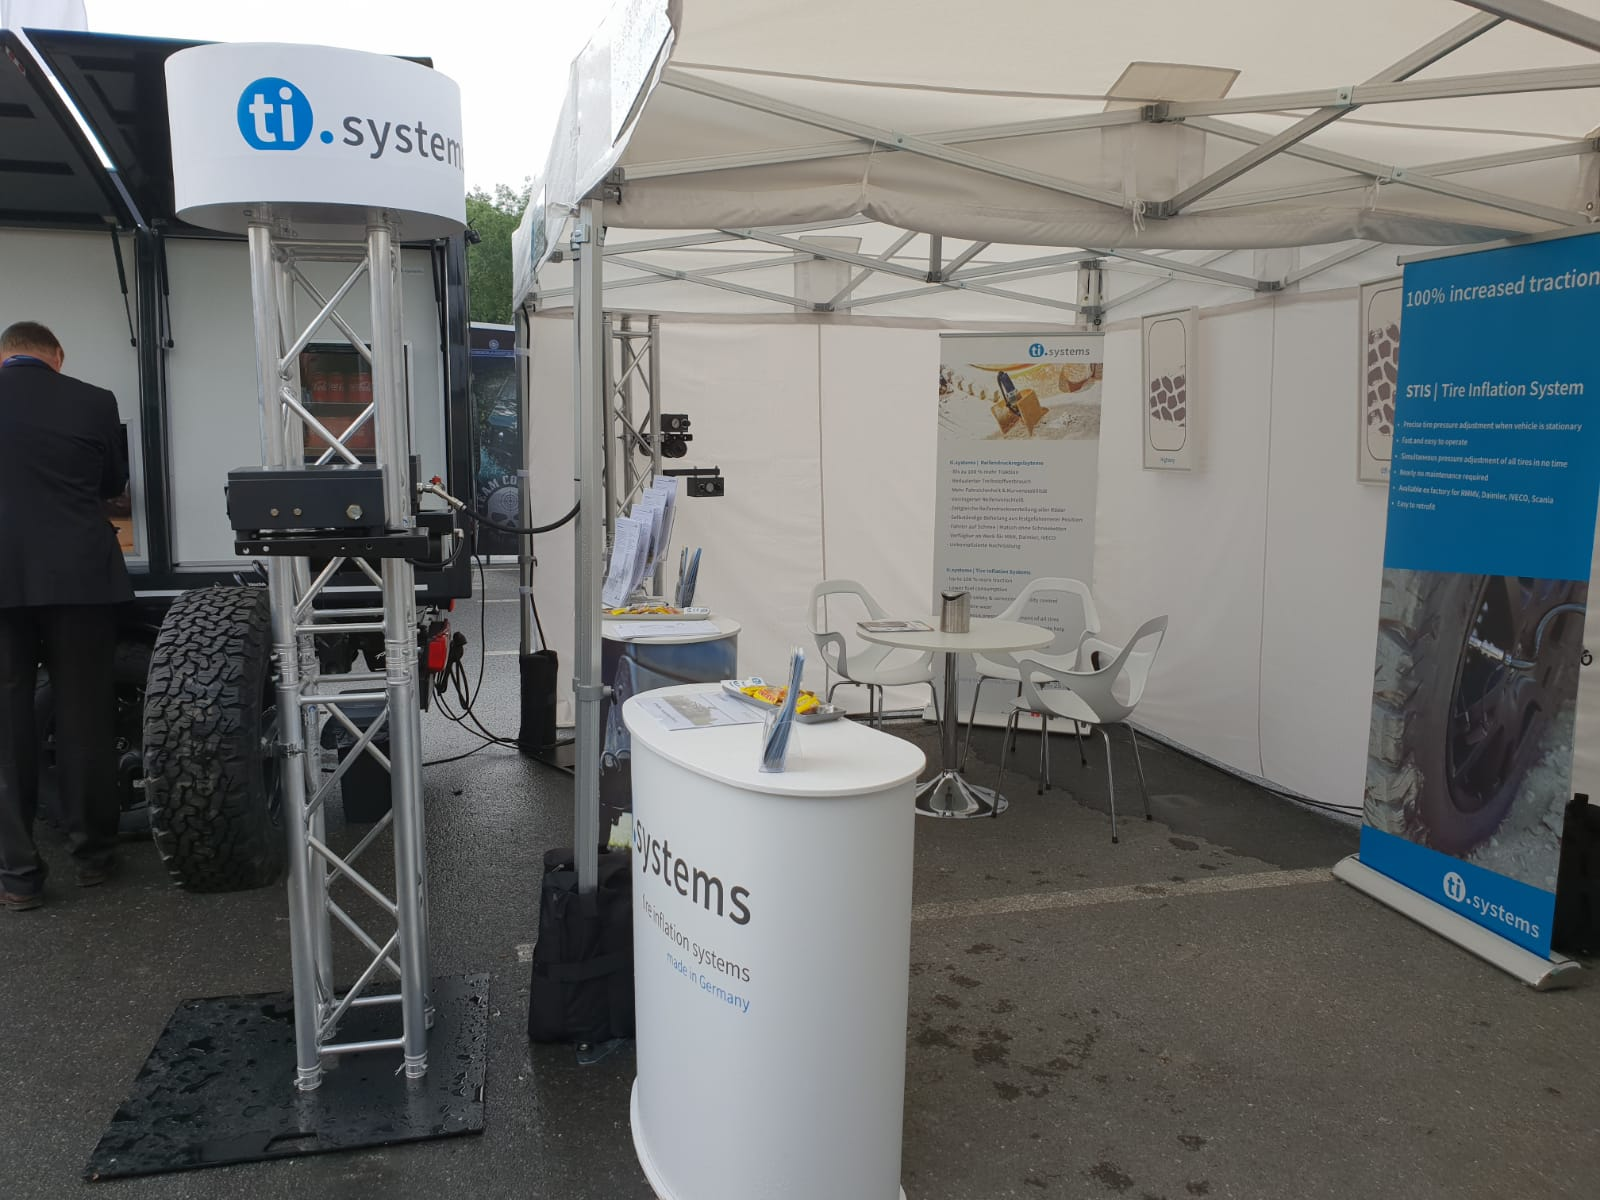 eurosatory_tisystems_booth_1